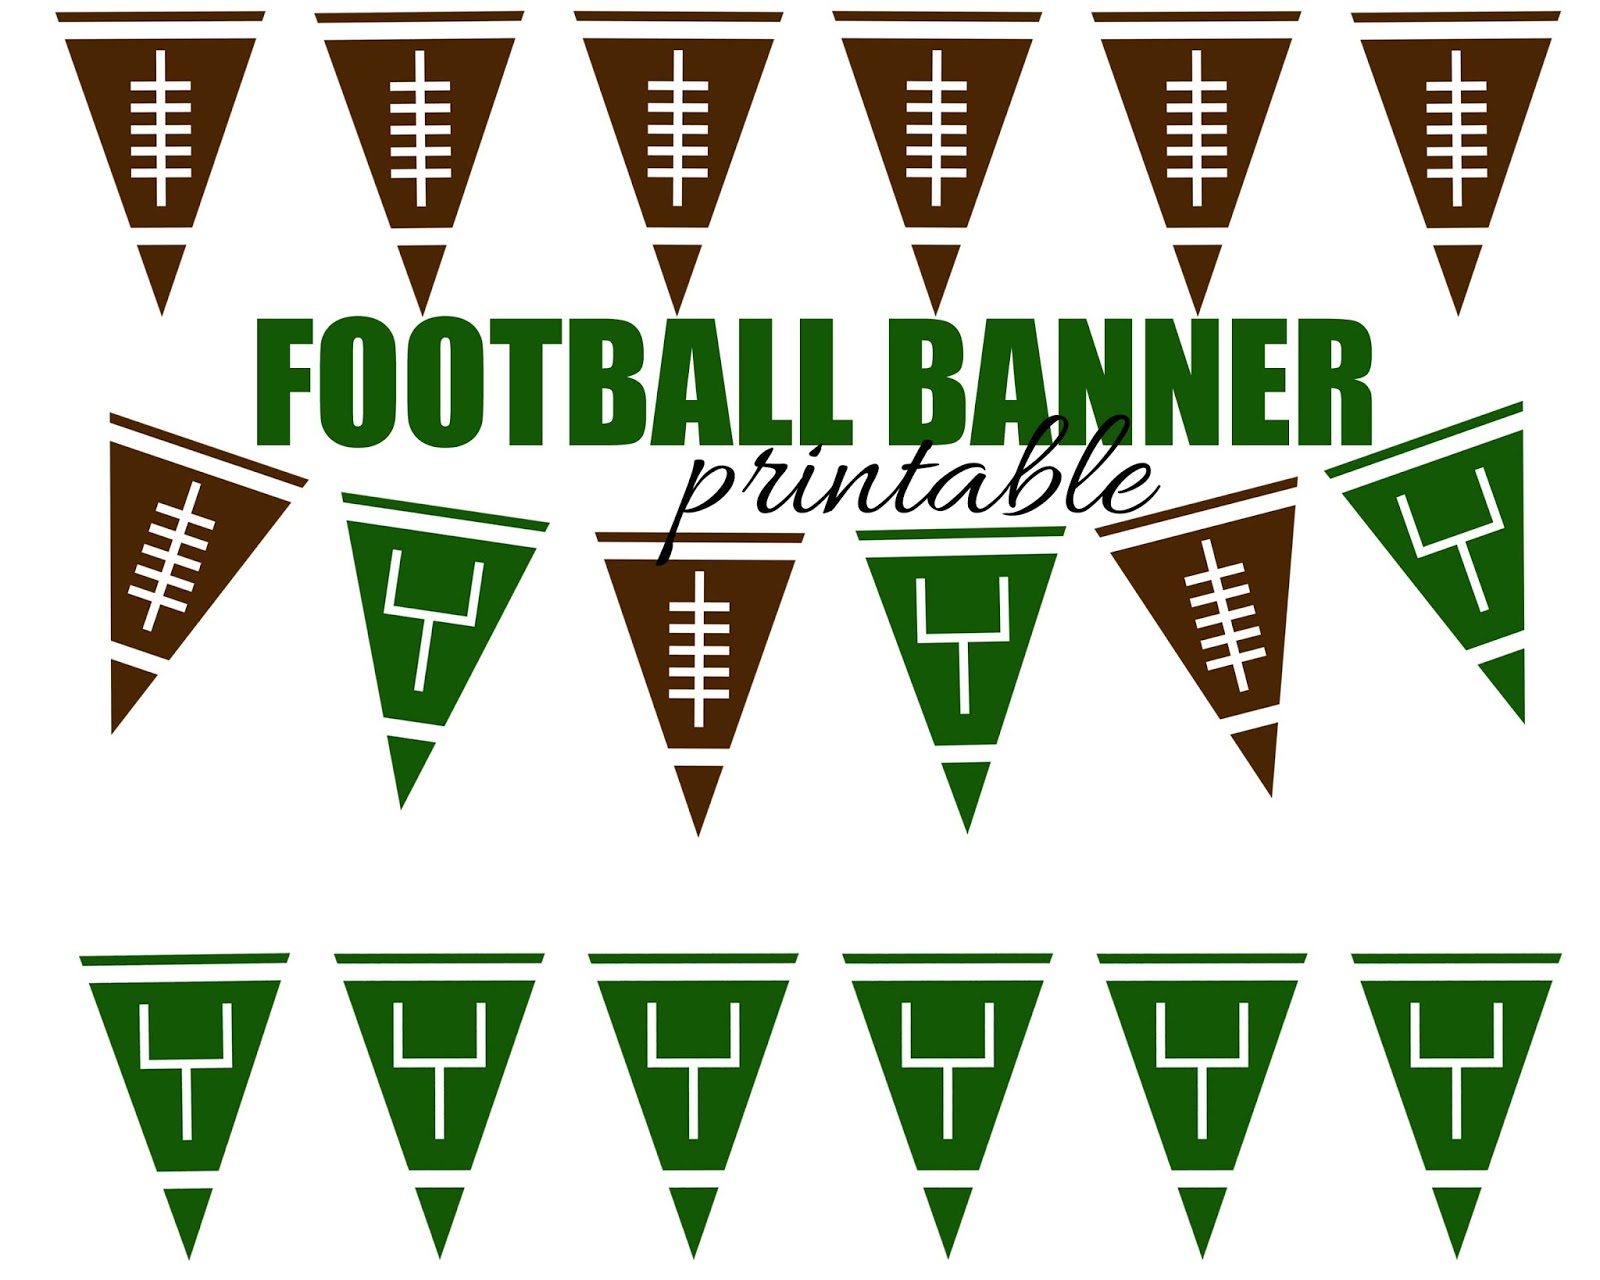 Dynamic image with free printable football